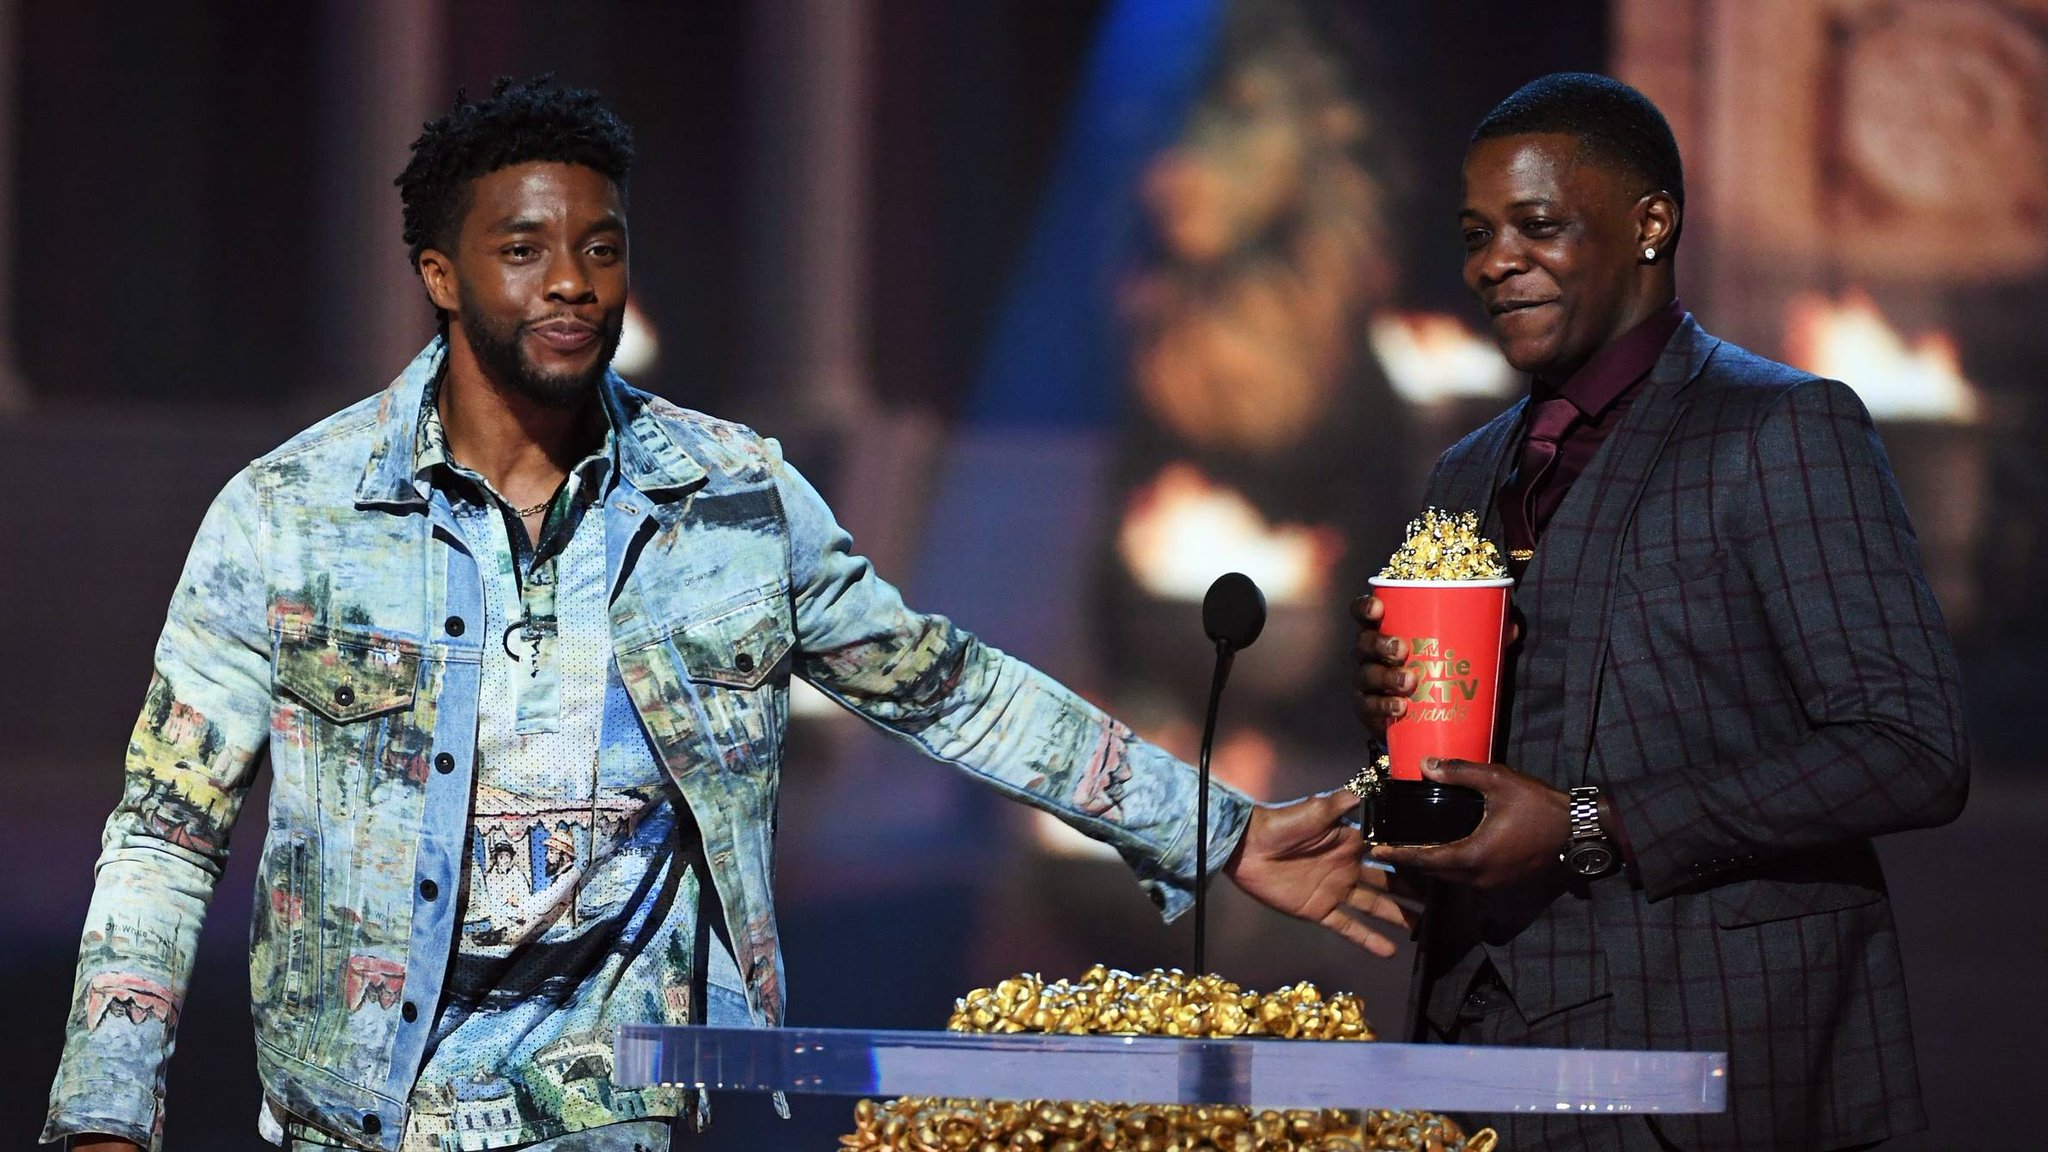 Chadwick Boseman gave his Best Hero award to real-life hero James Shaw Jr. https://t.co/WhxDl6LkwG https://t.co/iLy9Yxmmcv